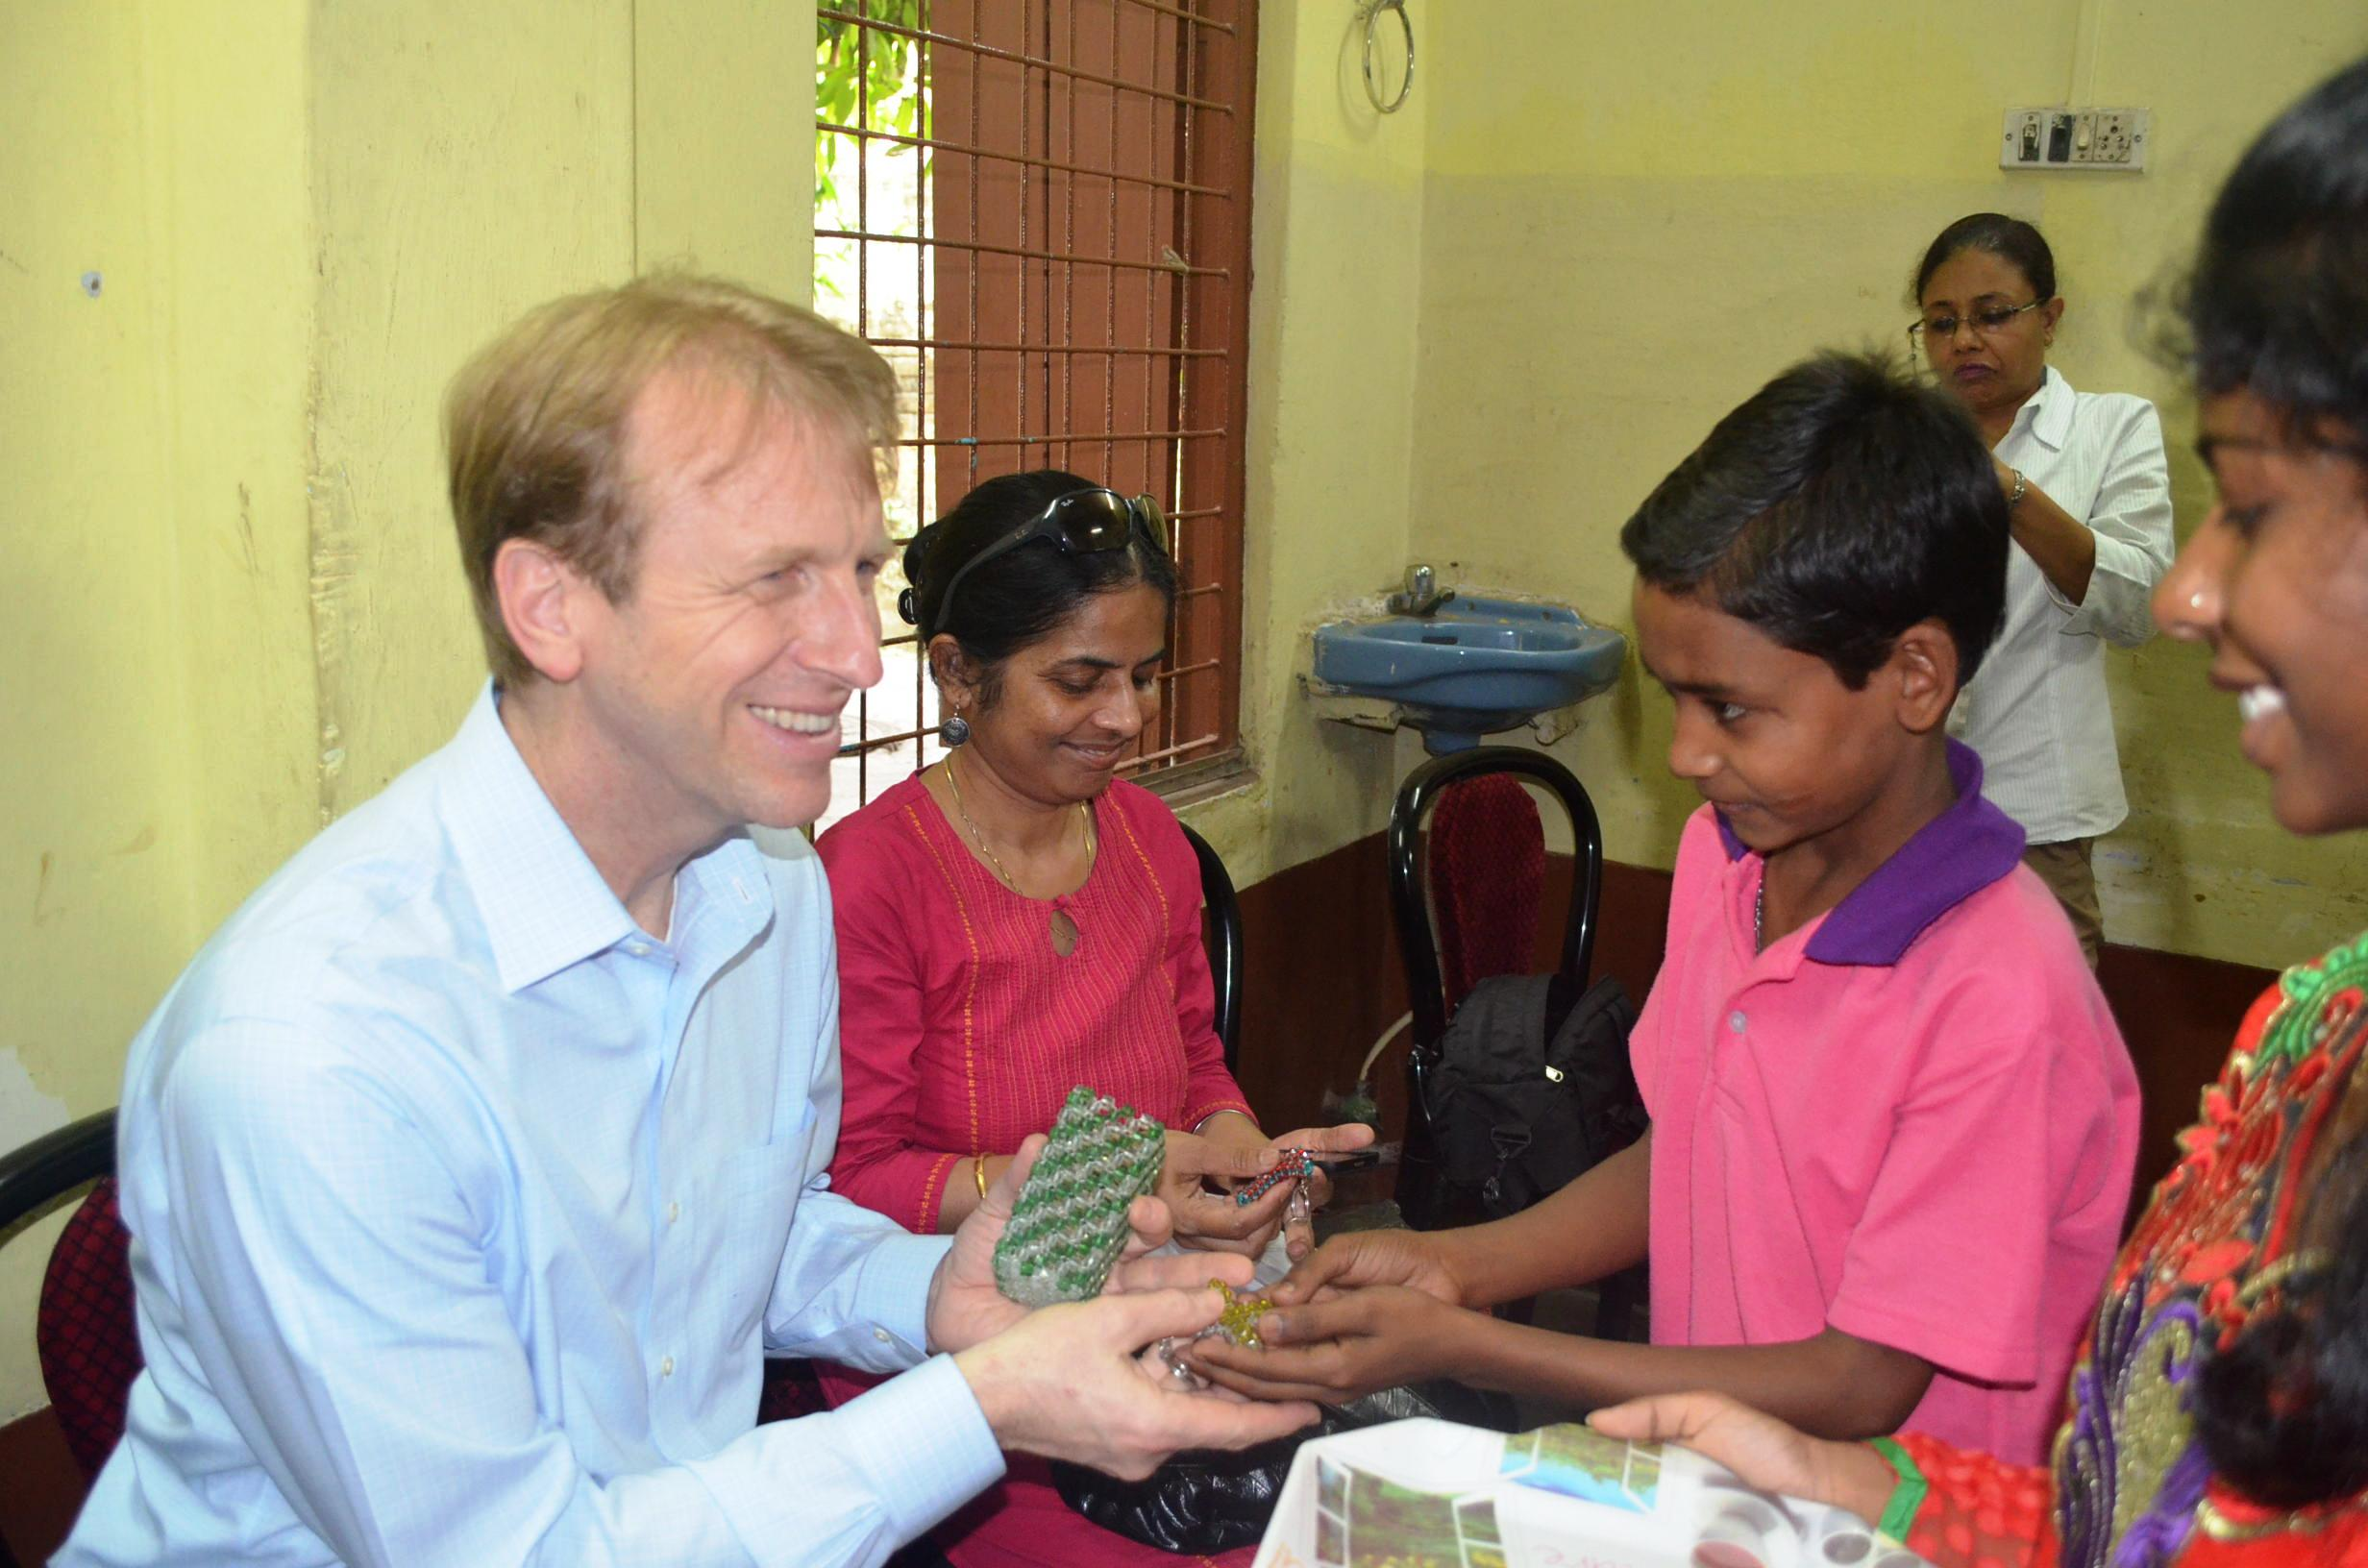 Daniel Speckhard, President & CEO of Lutheran World Relief and IMA World Health, with children at the Arunima Hospice, a care facility for people with HIV/AIDs and children whose parents have HIV/AIDs that is affiliated with the Episcopal Diocese of Kolkota, India.